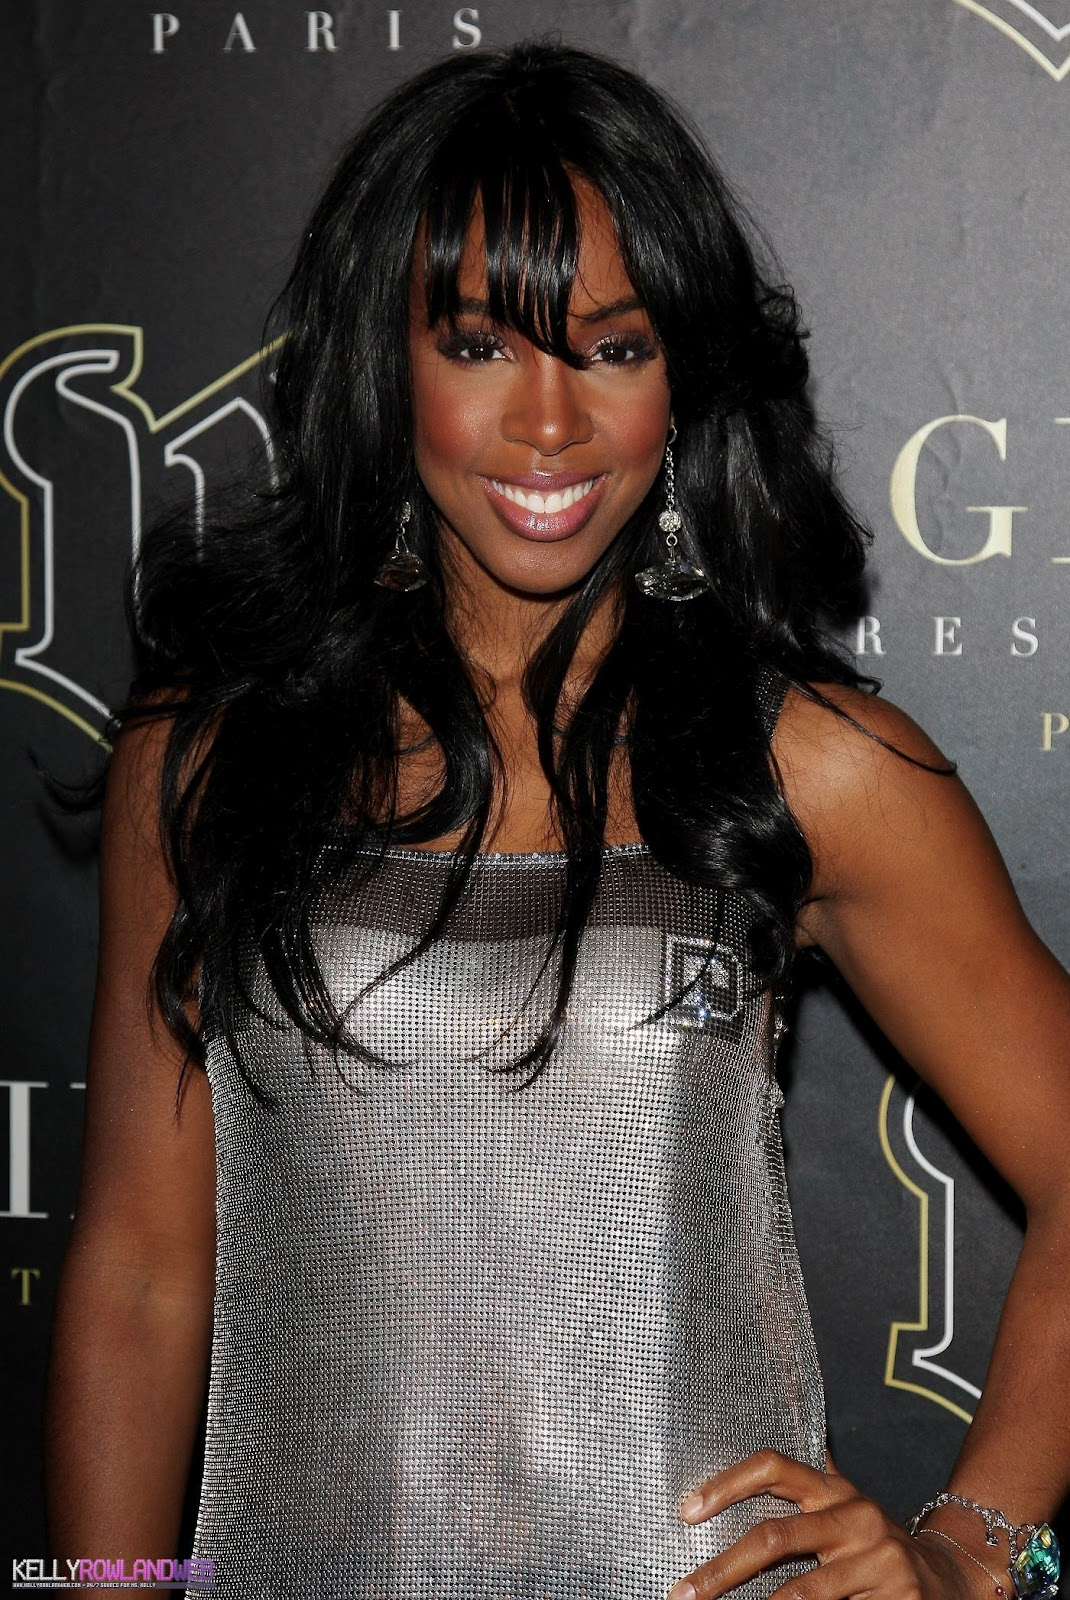 http://1.bp.blogspot.com/-PGi46zF1qYg/UB2J_4-TXRI/AAAAAAAAFQQ/OuLROjDifC8/s1600/Kelly-Rowland-hairstyle-pictures-singer-actress-celebrity-on%2Band%2Bon-Kelly-Rowlands-wallpapers%2B(12).jpg